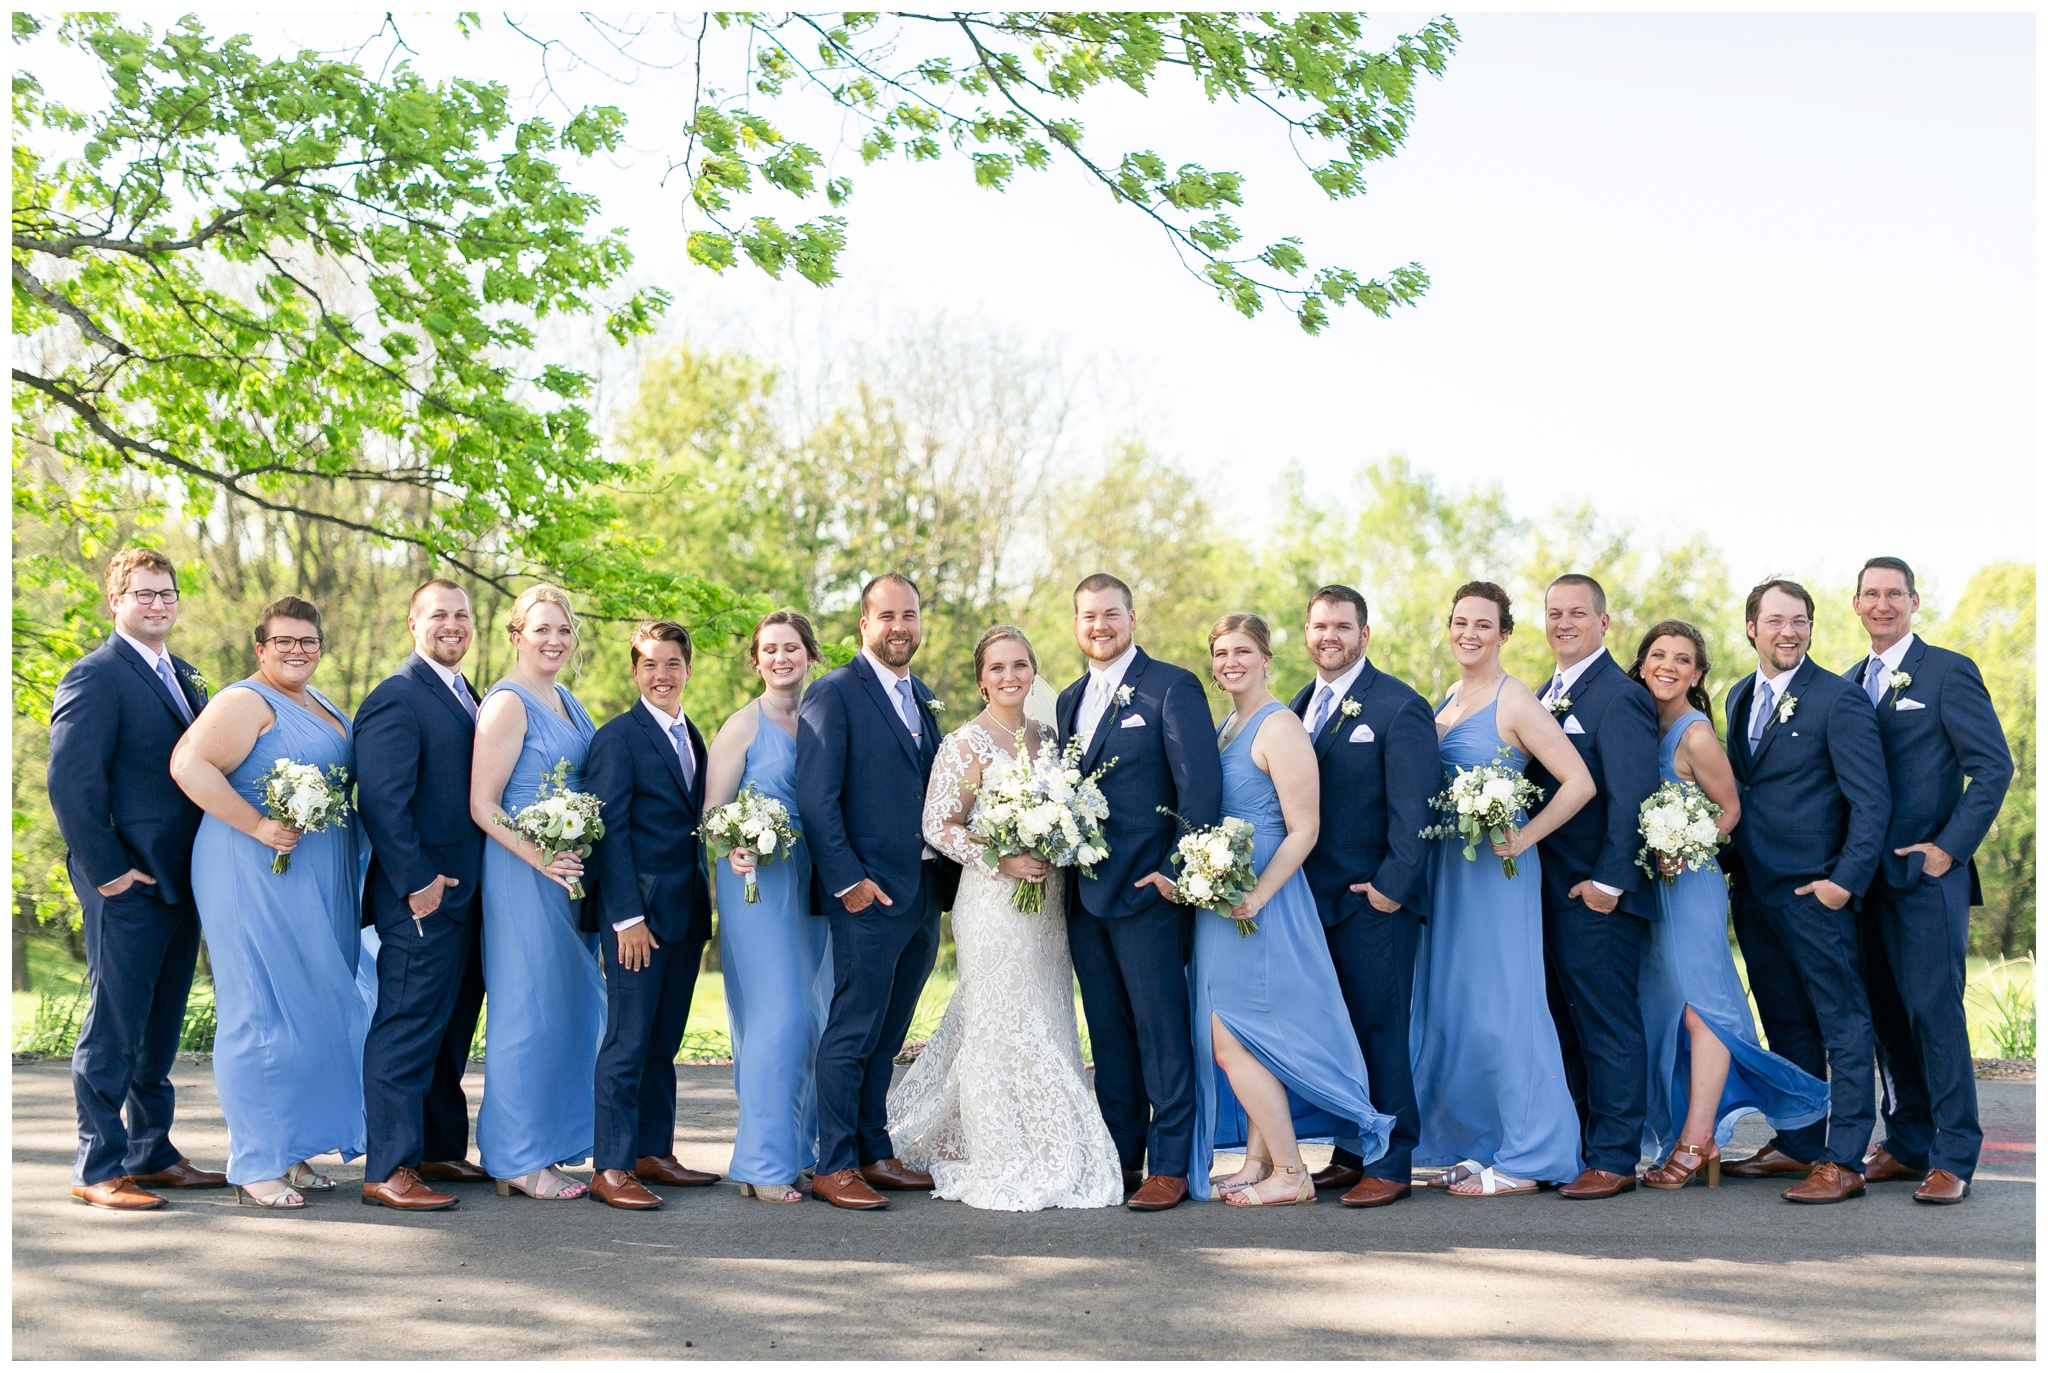 vennebu_hill_baraboo_wisconsin_wedding_madison_wisconsin_wedding_photographers_3027.jpg